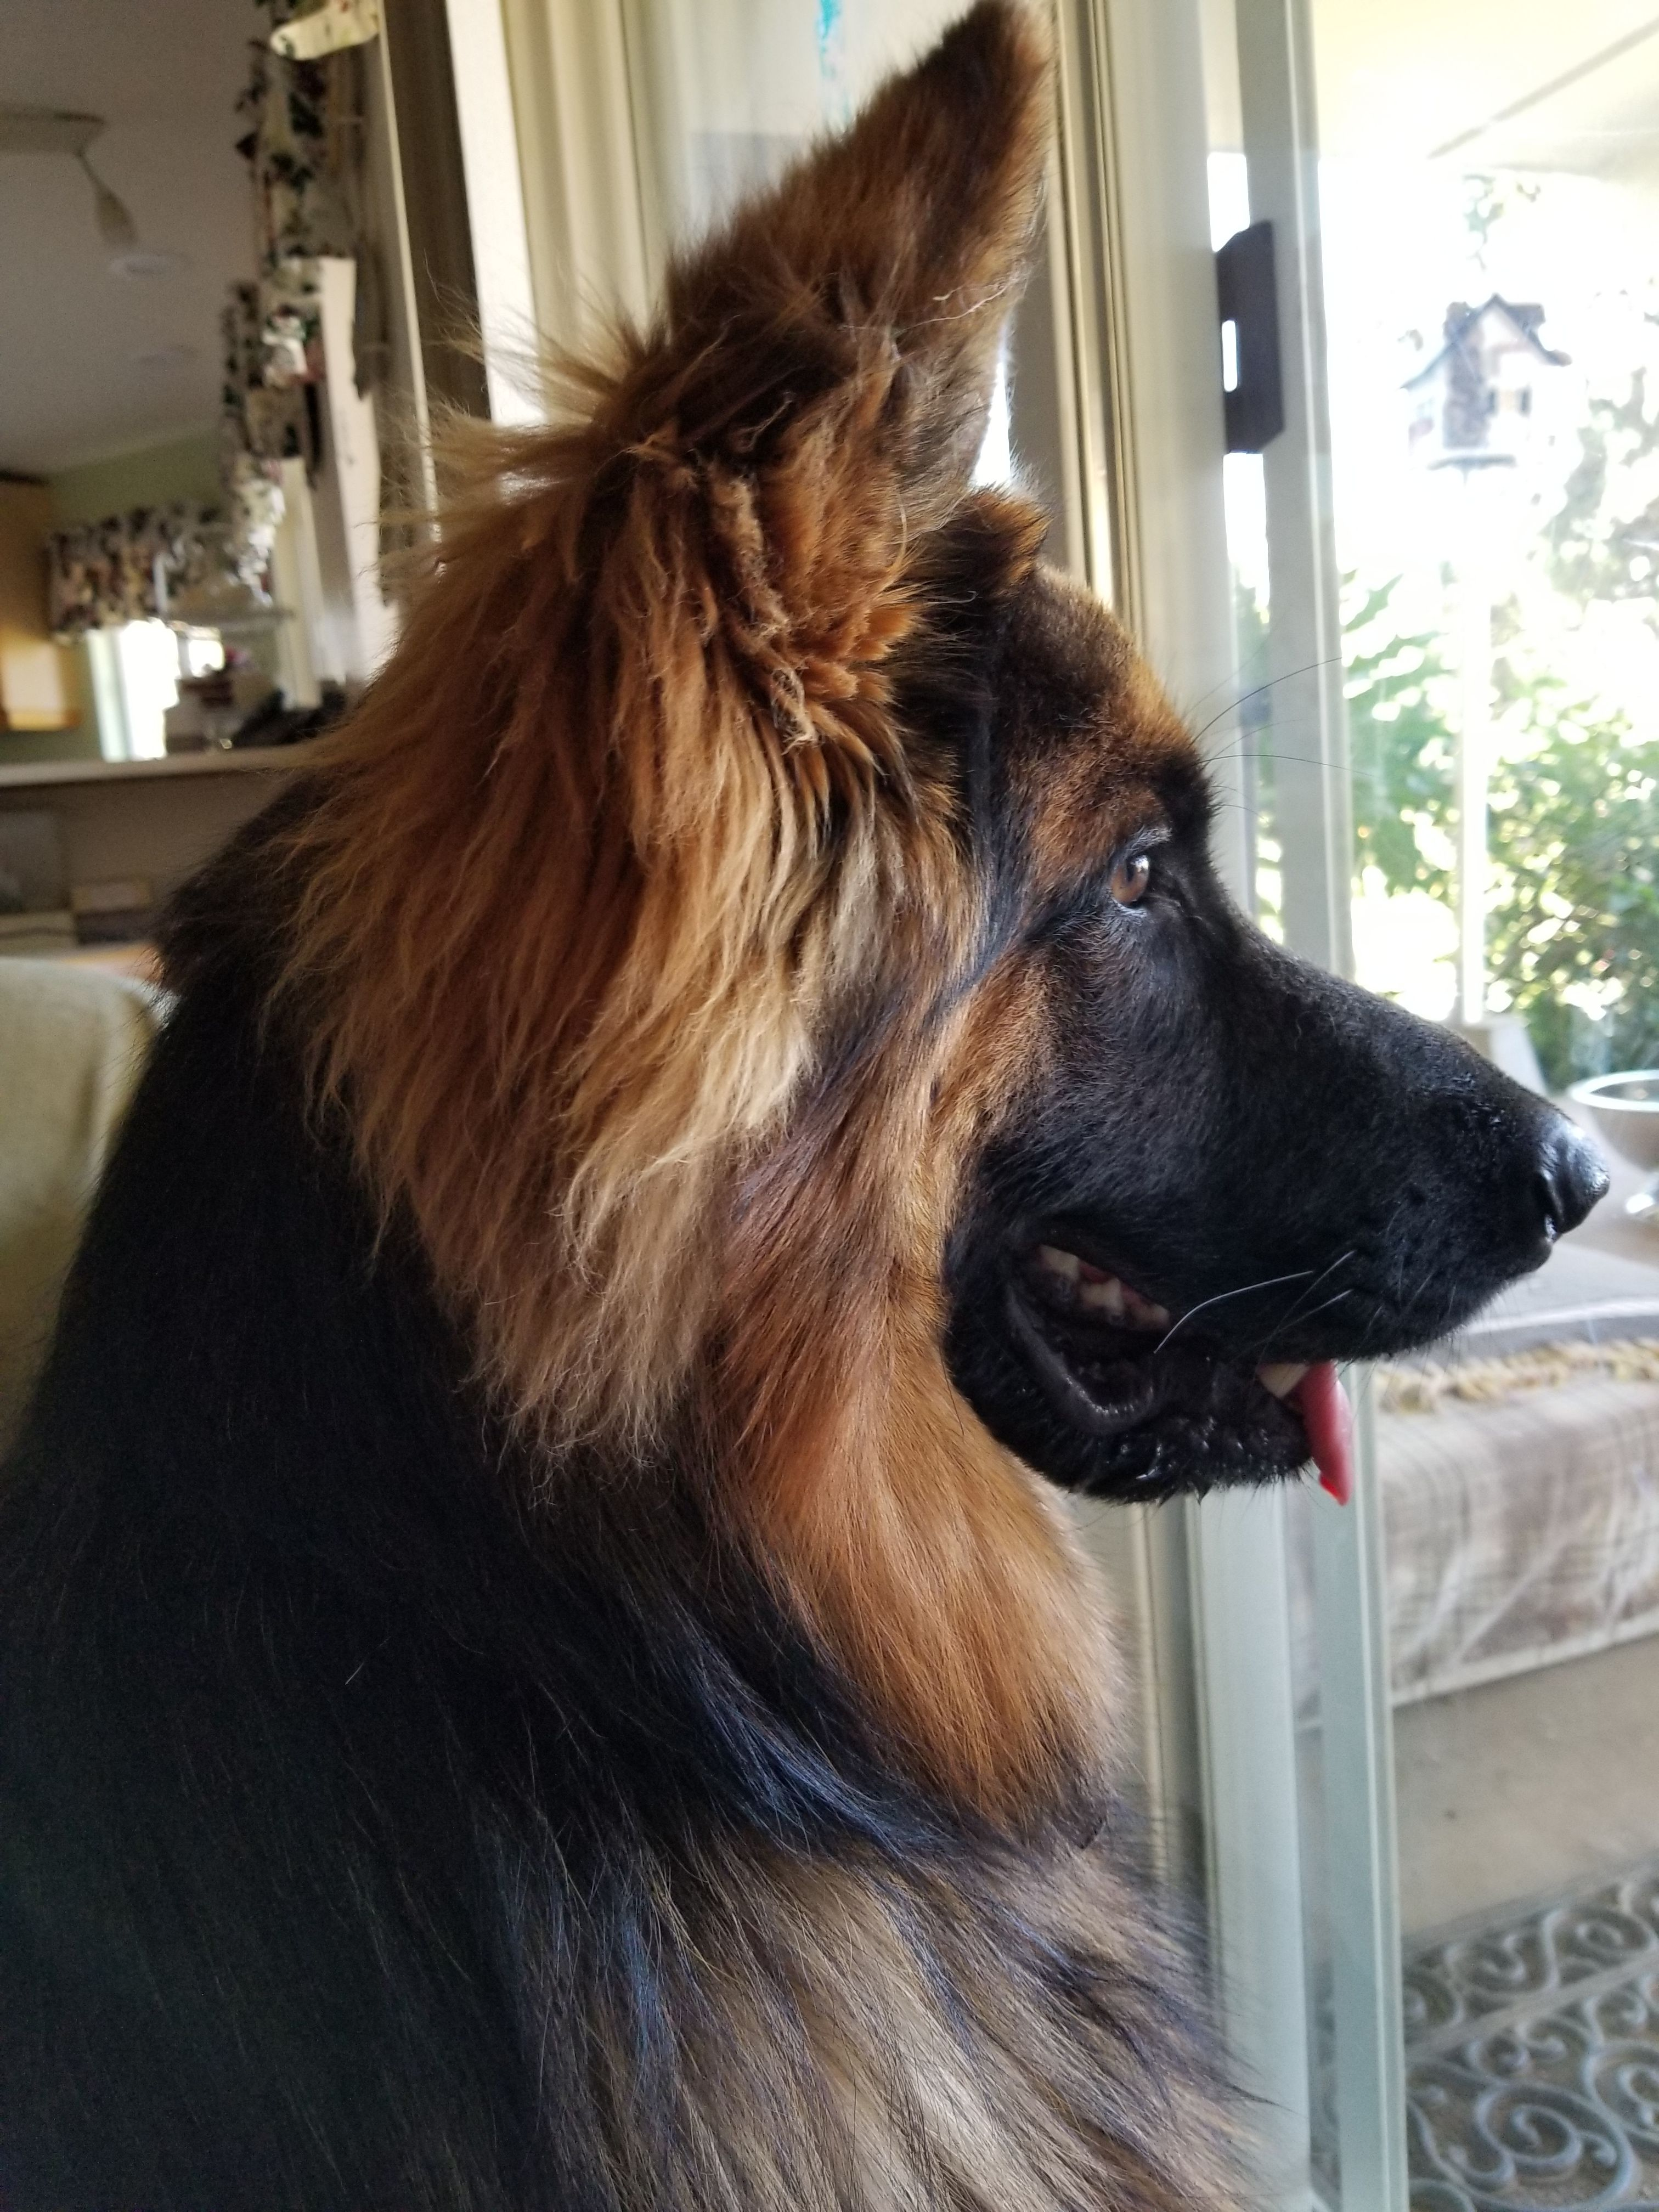 He S Intensely Watching Squirrels Romping In The Back Yard My Ted E Bear Perros Pastor Aleman Perros Perros Lindos